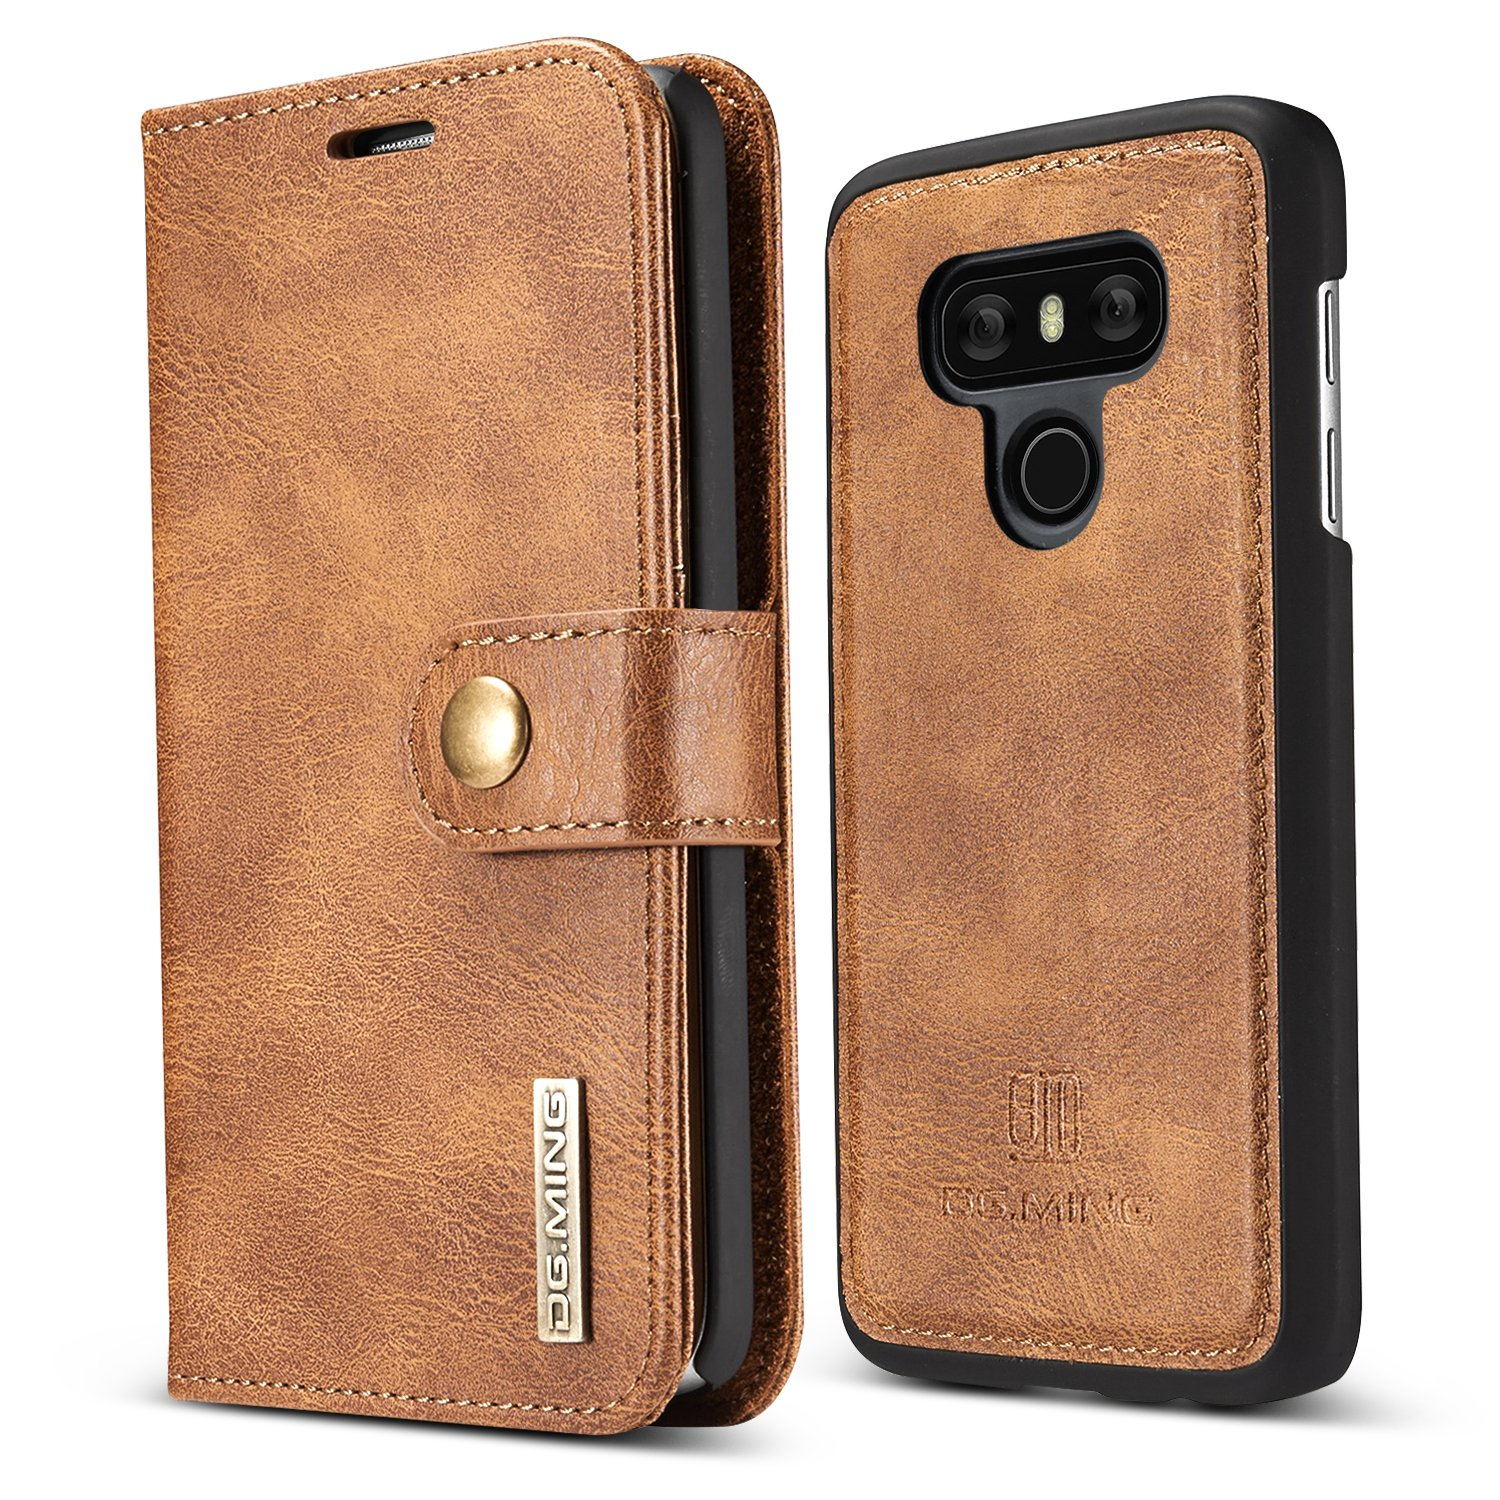 LG G6 Case,JGOO LG G6 2 In 1 Detachable Premium Flip Removable Synthetic Leather Wallet Case w/ Magnetic Snap,Minimalist PC Protective Cover 3 Card Slot for LG G6,Black